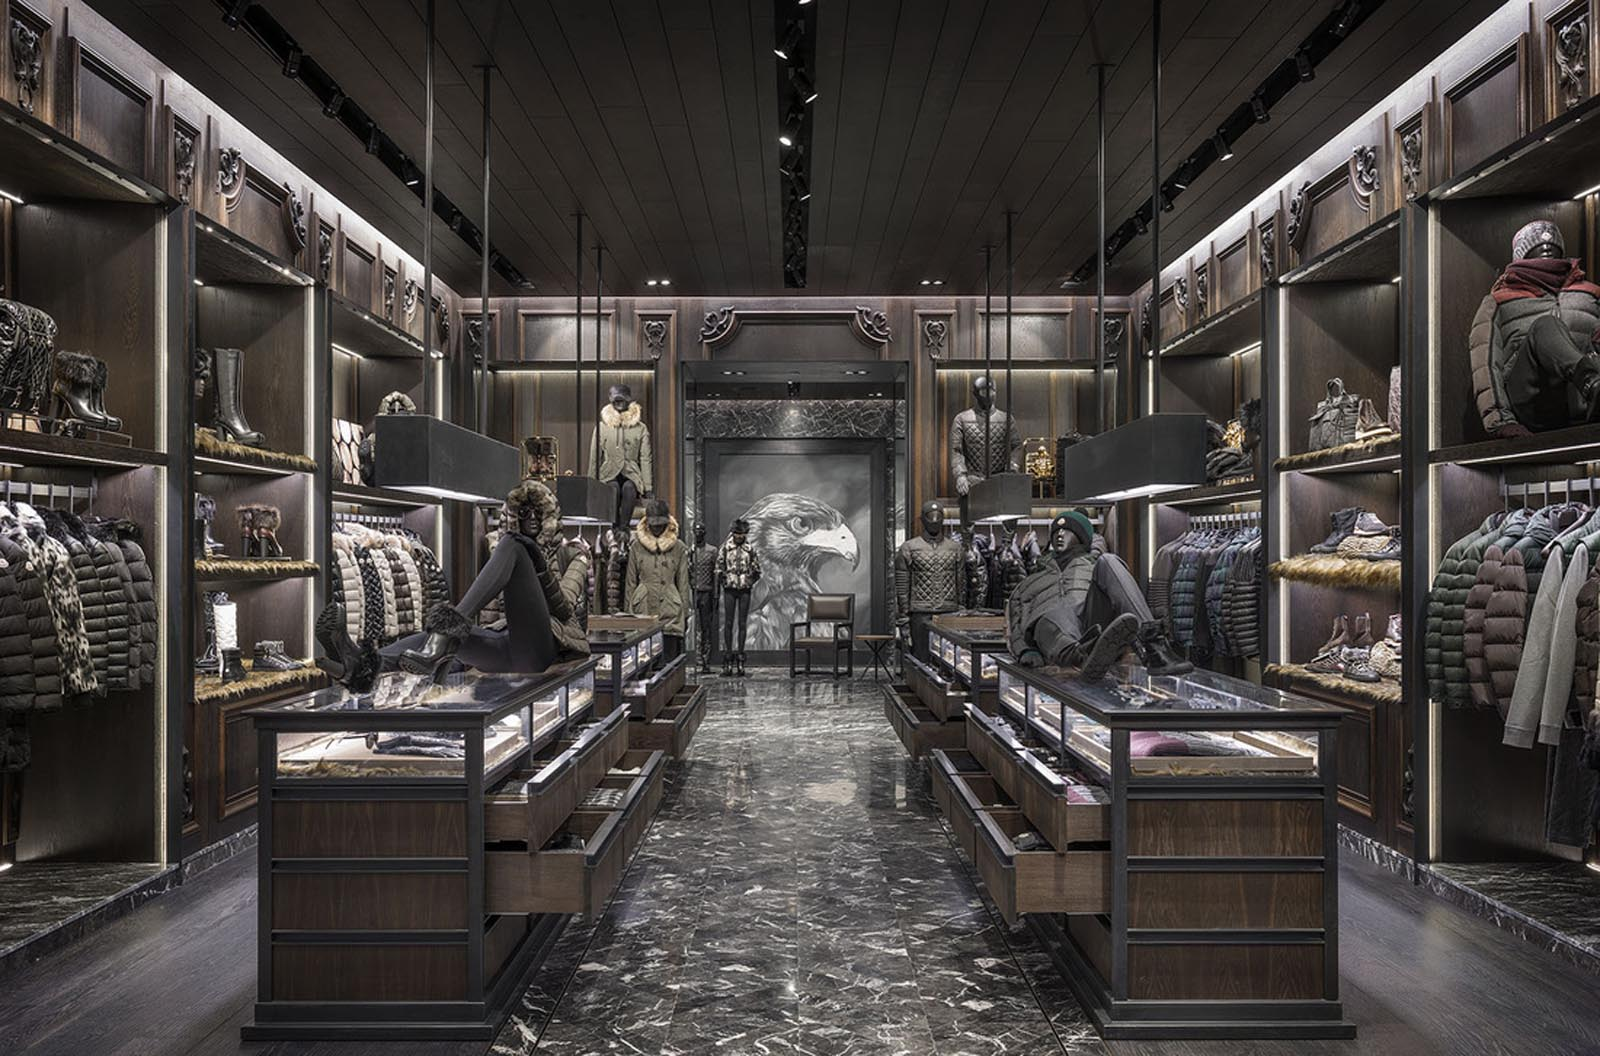 Moncler clothing displays and viewing drawers